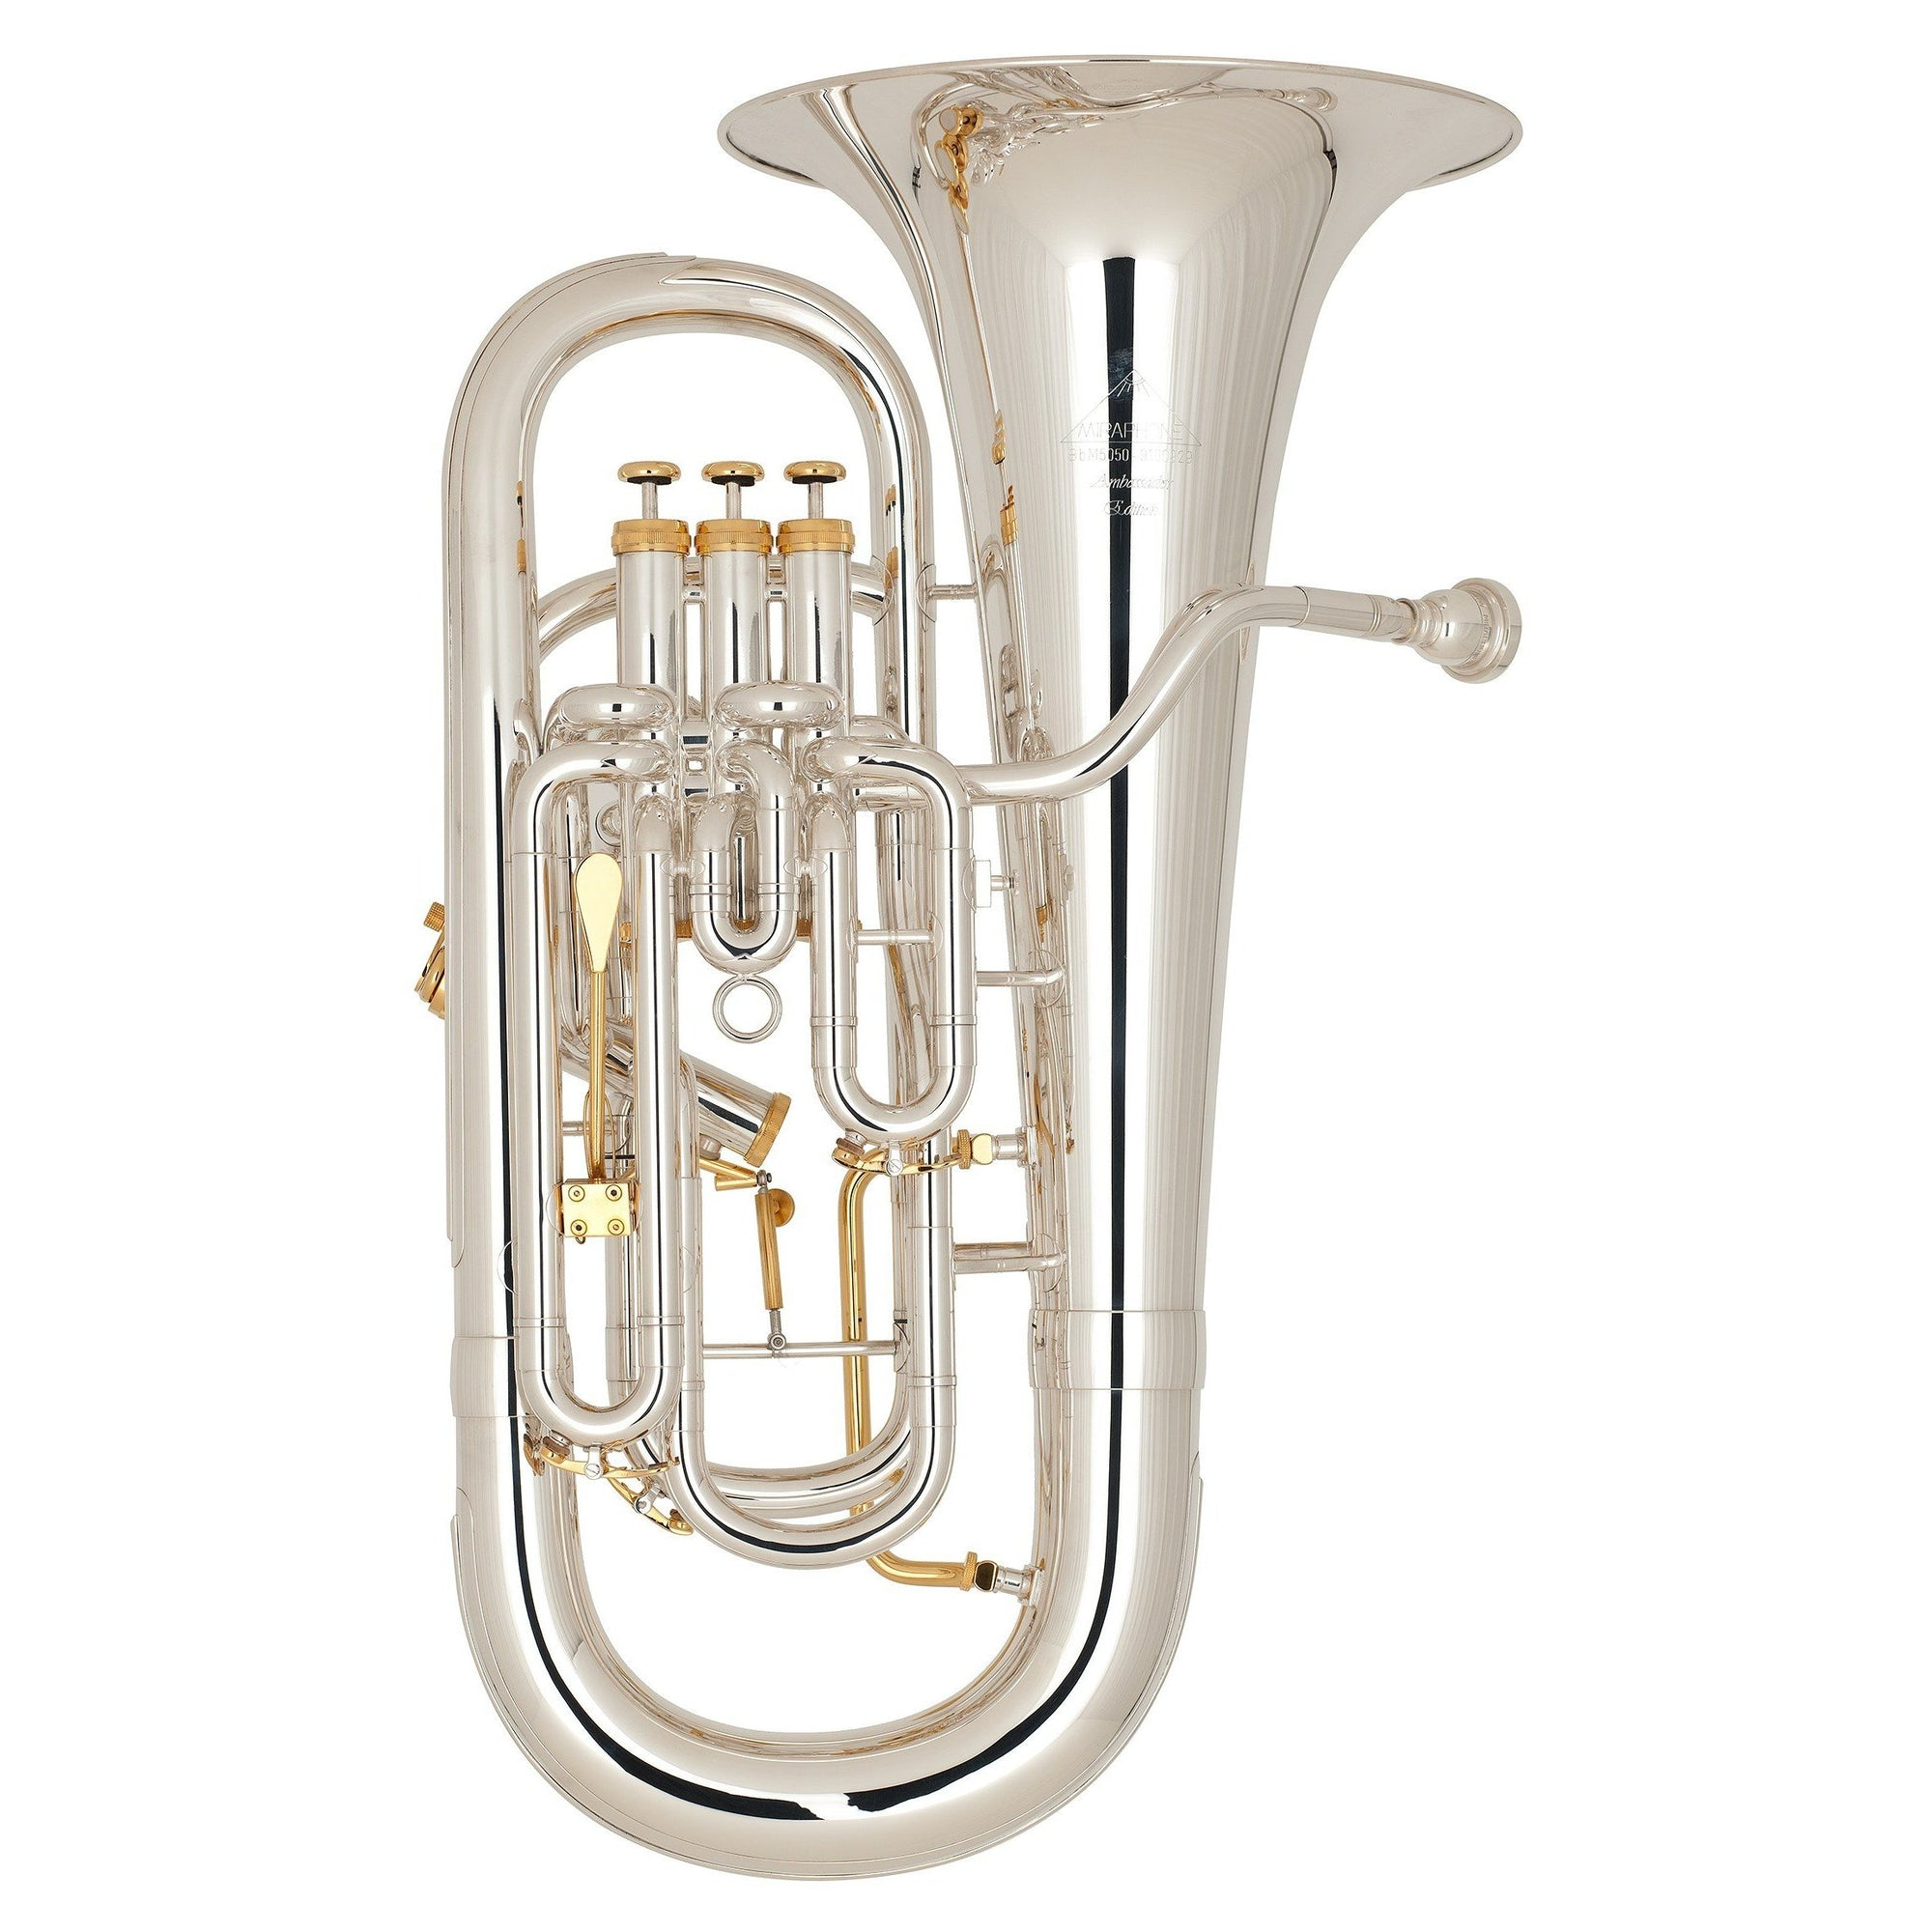 Miraphone - Model M5050 Ambassador Edition Bb Euphoniums-Euphonium-Miraphone-Music Elements